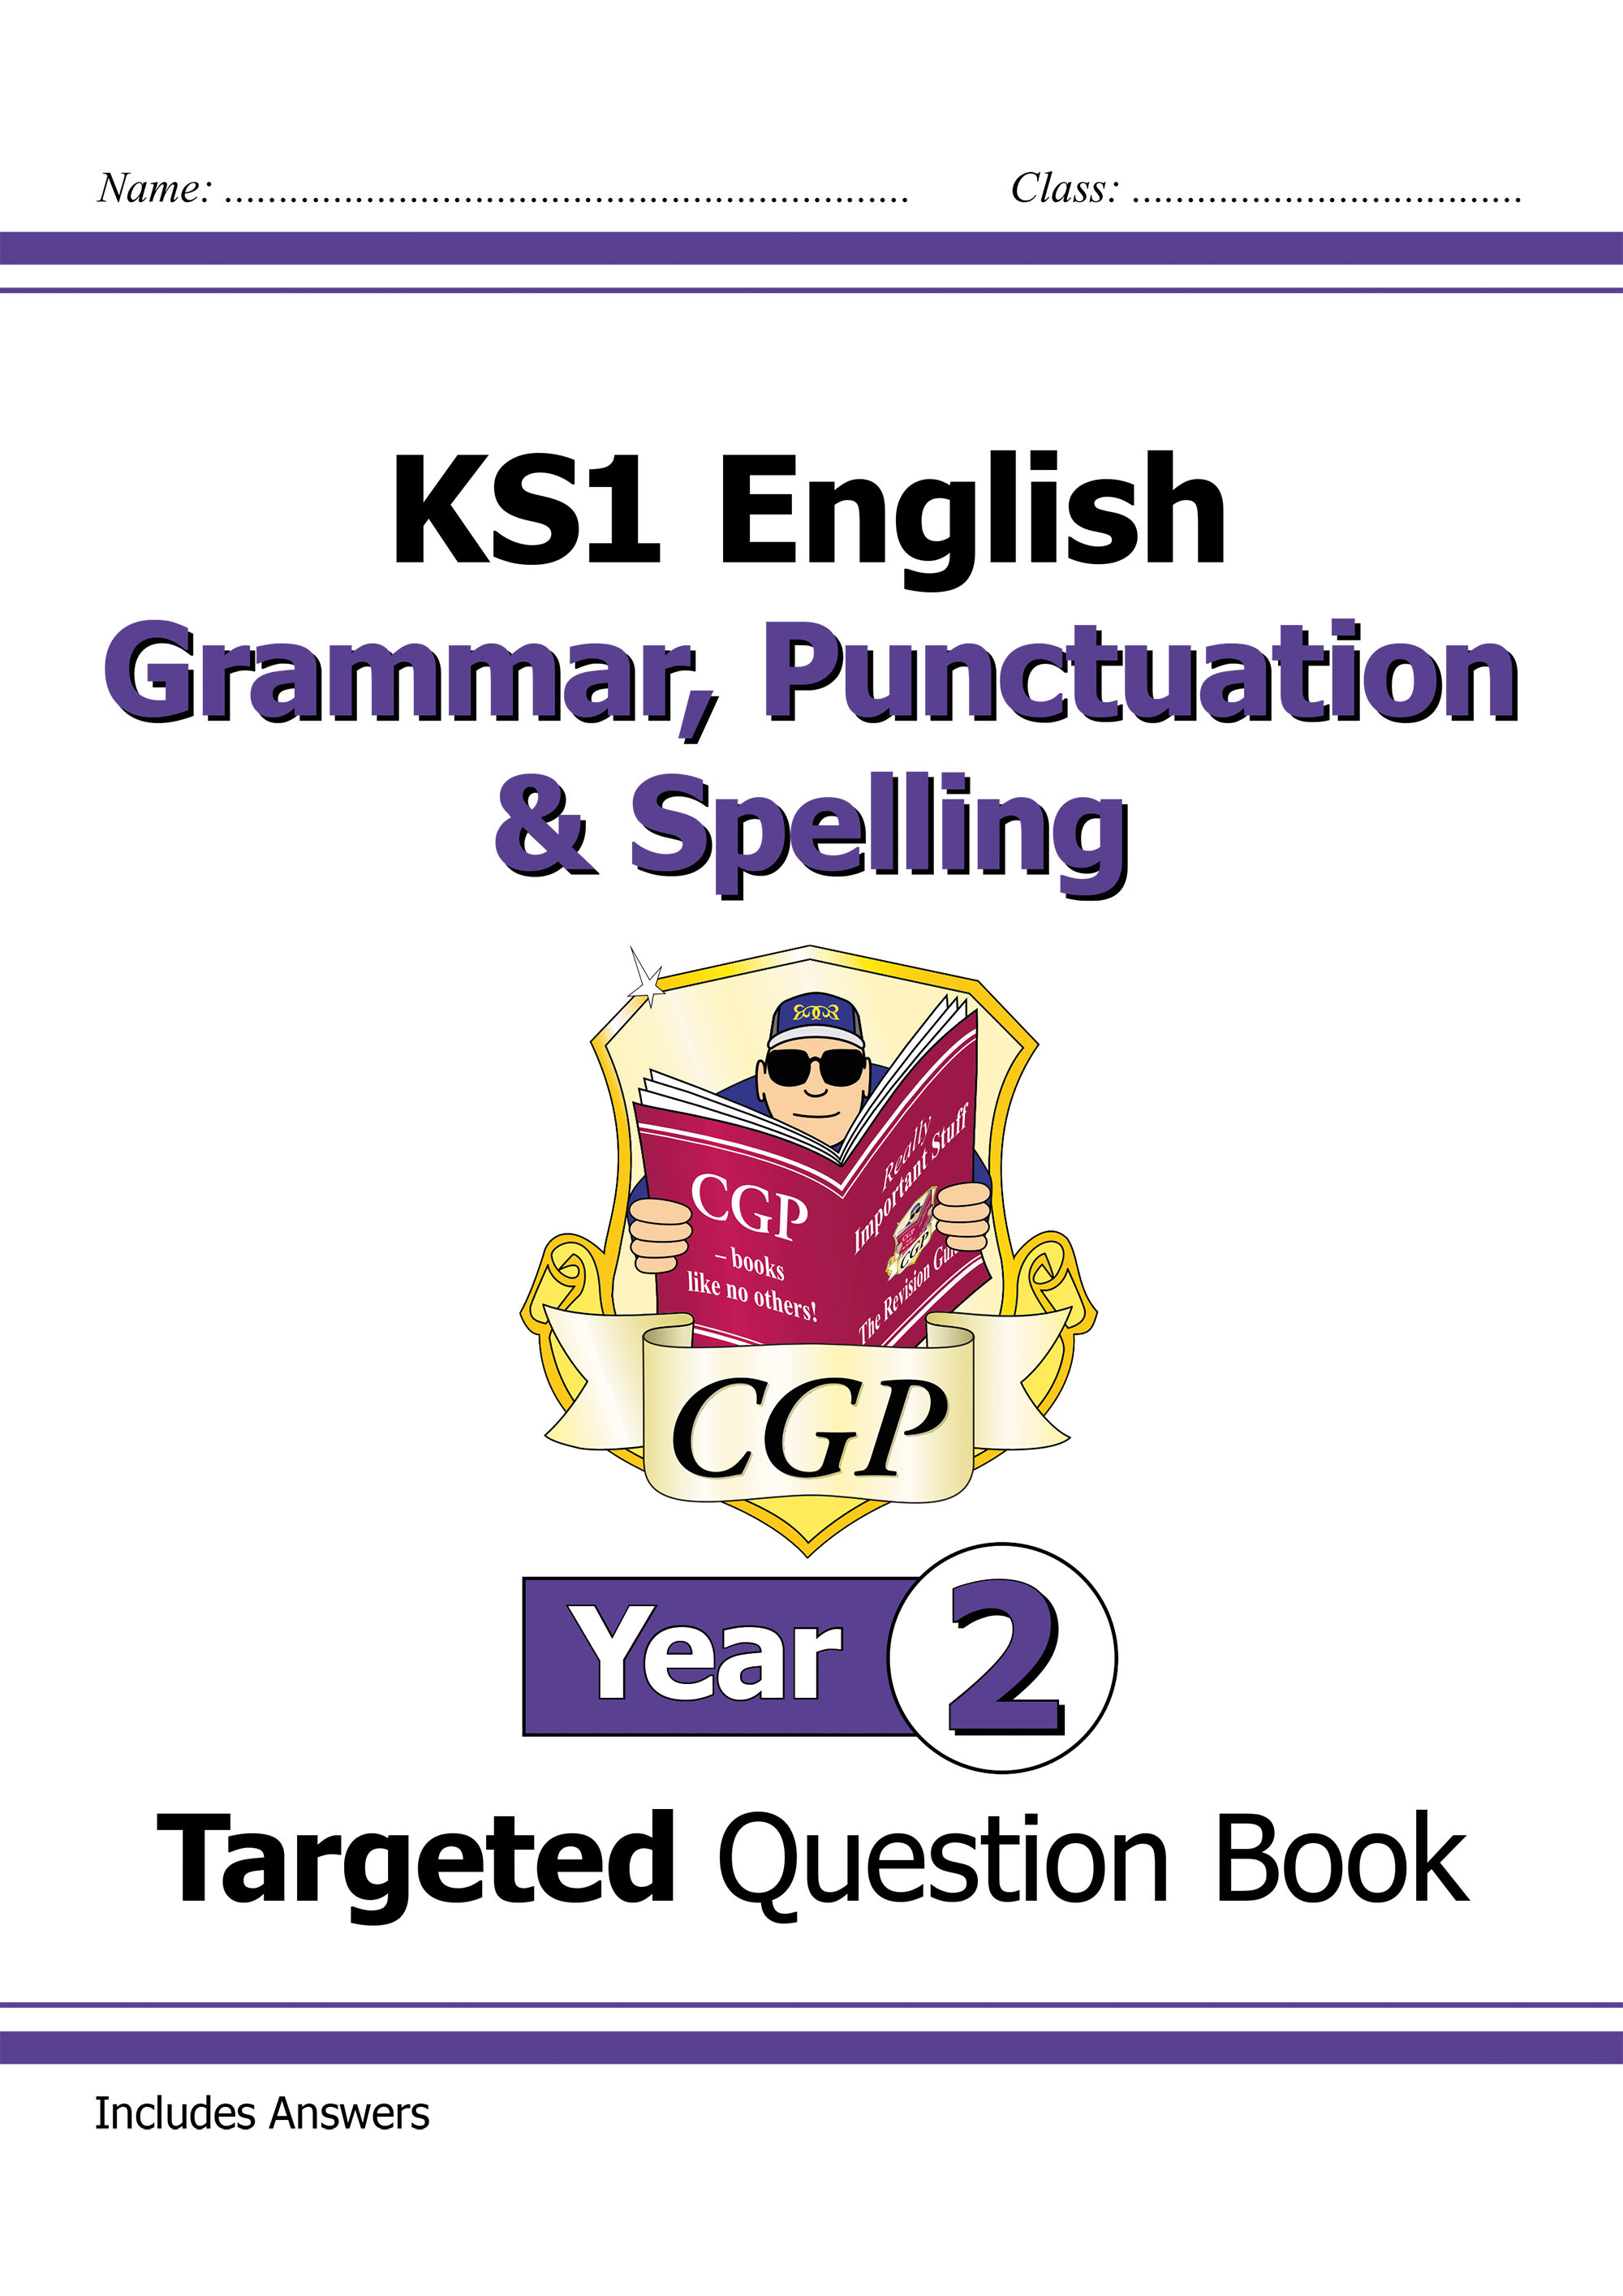 E2W11DK - KS1 English Targeted Question Book: Grammar, Punctuation & Spelling - Year 2